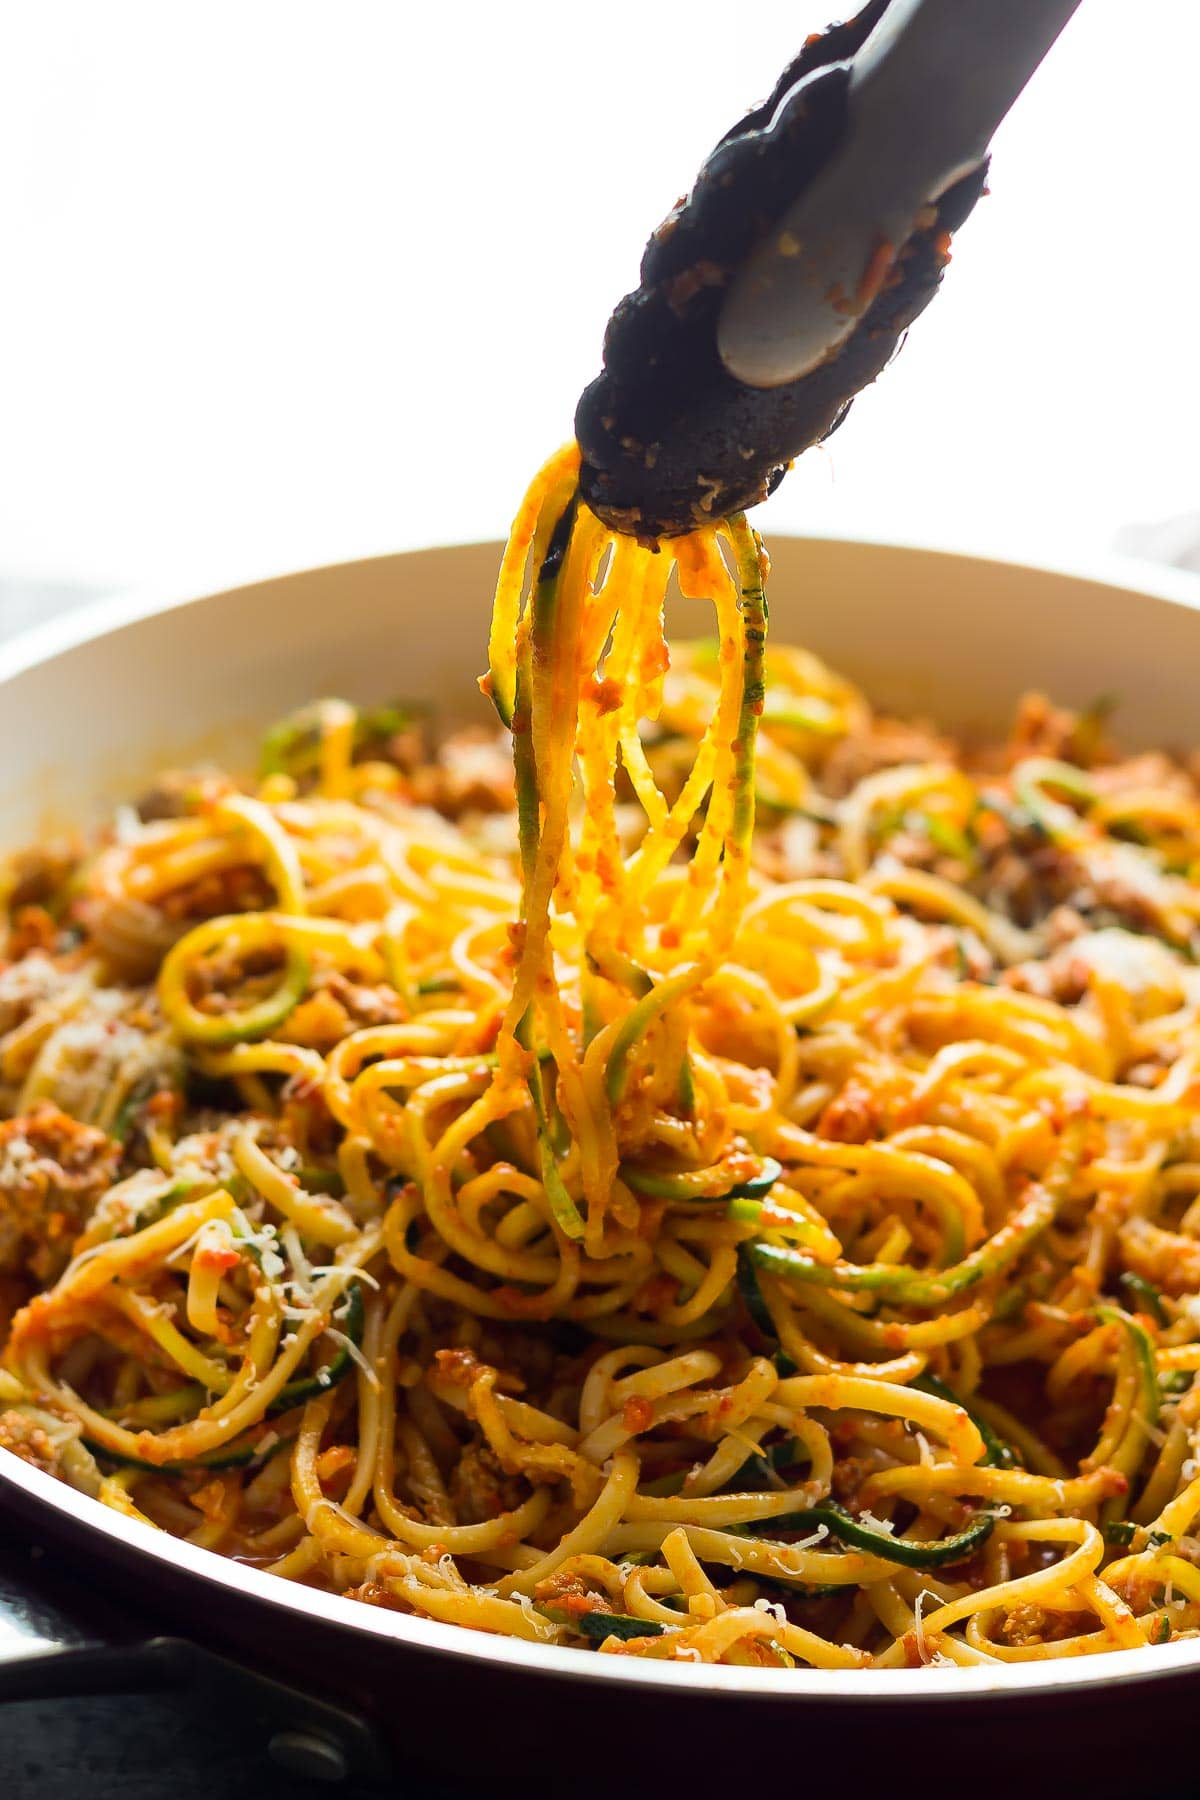 tongs pulling zucchini noodles in romesco sauce out of pan